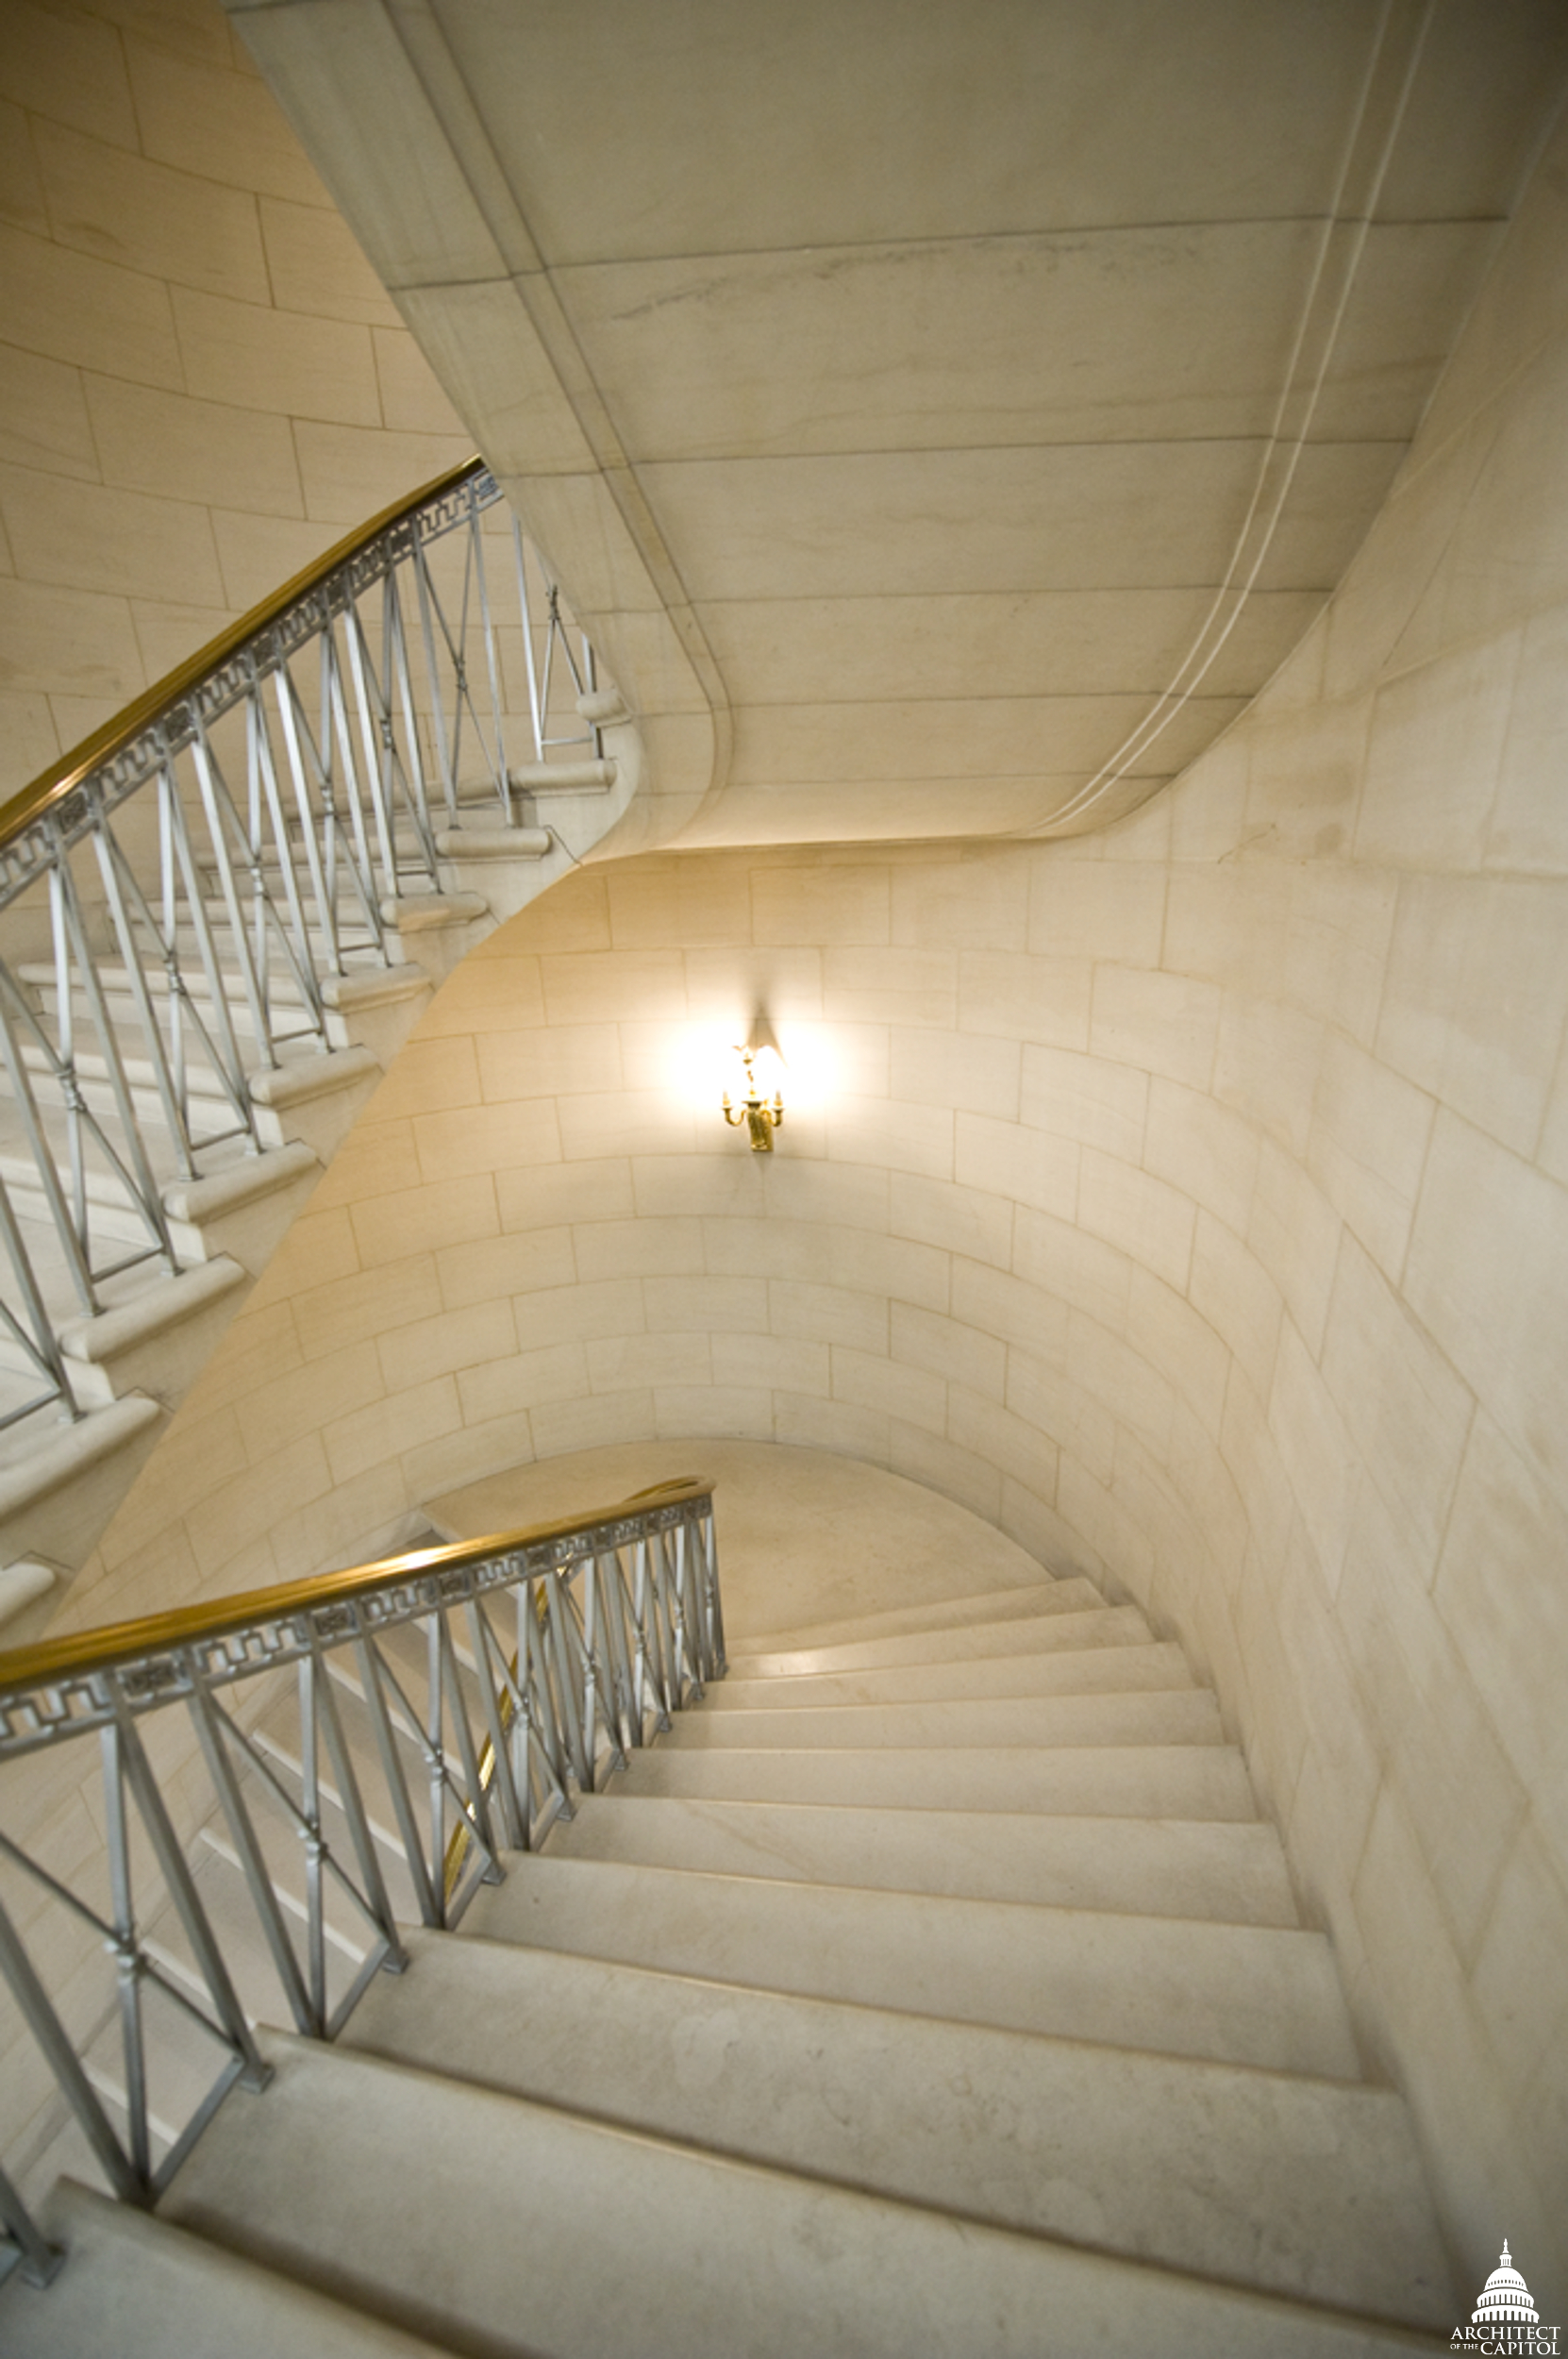 Interior staircase in the Longworth Building.